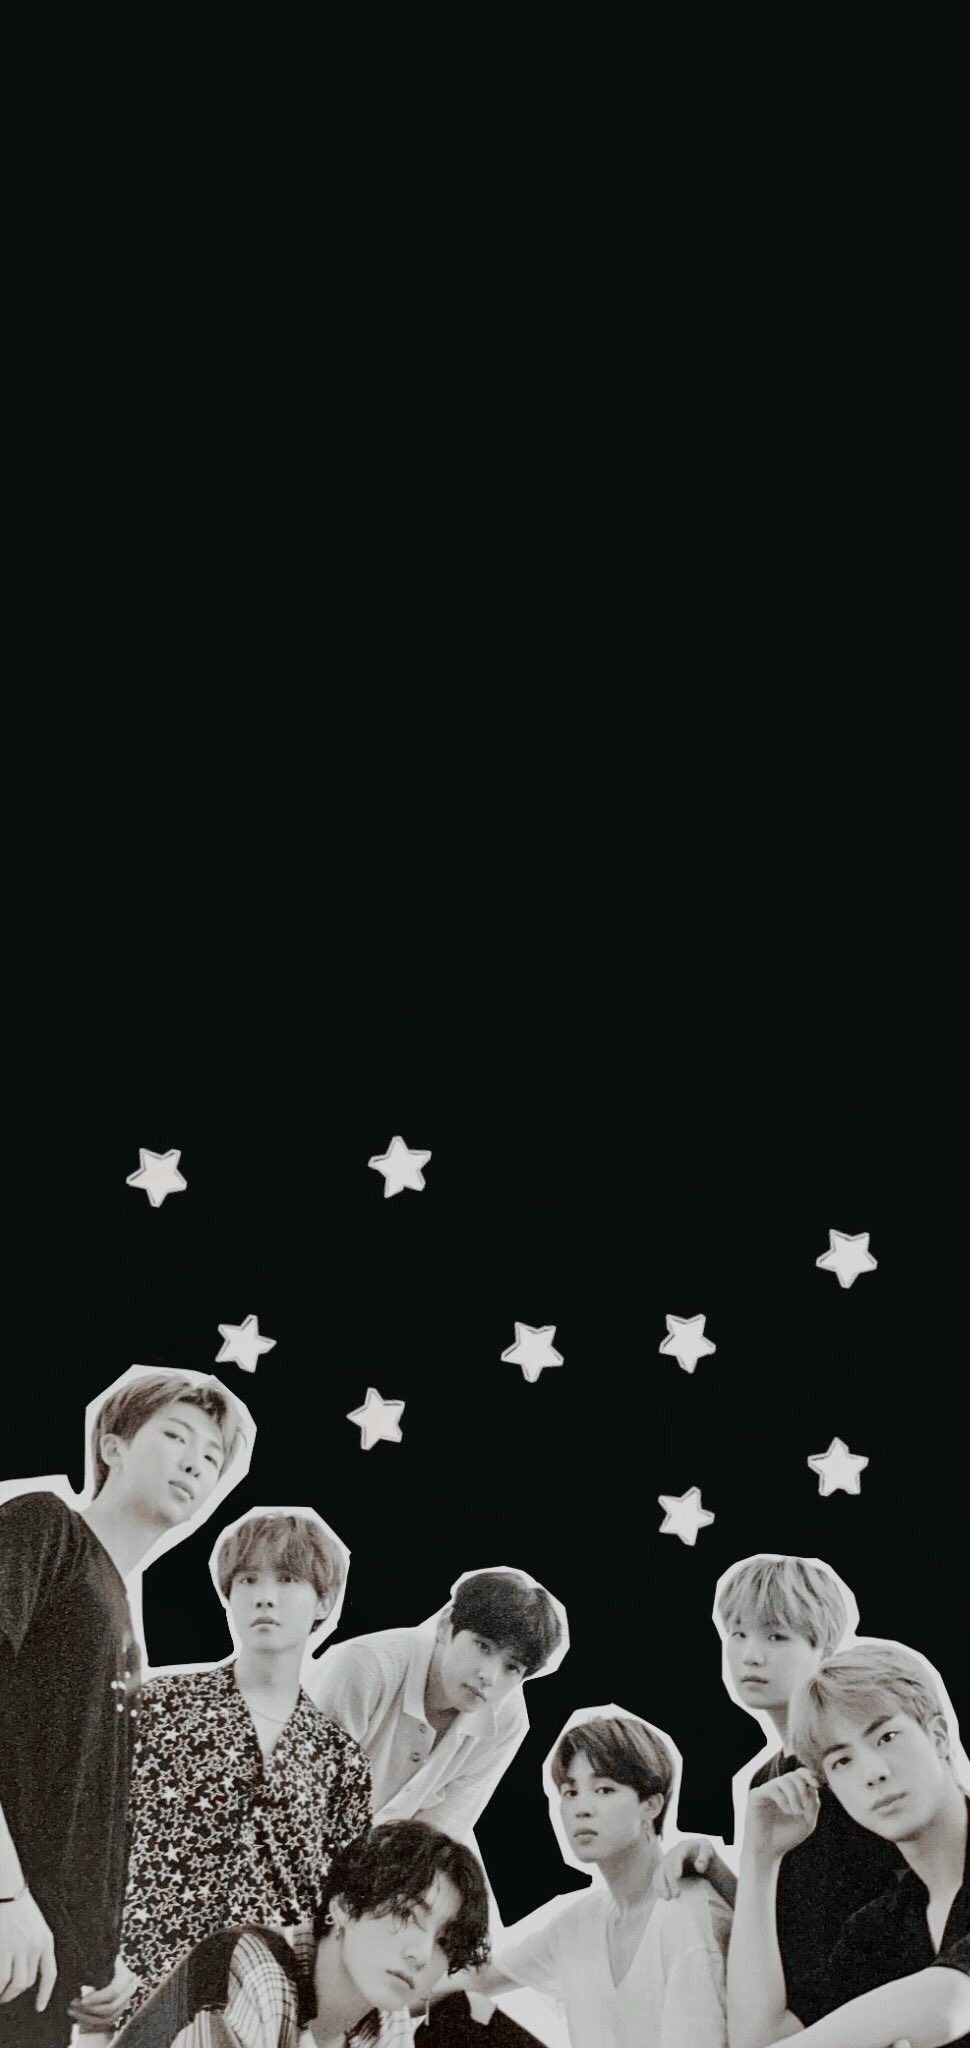 Pin By 7winterbear On Bts Lookscreen Wallpapers Bts Wallpaper Bts Black And White Bangtan